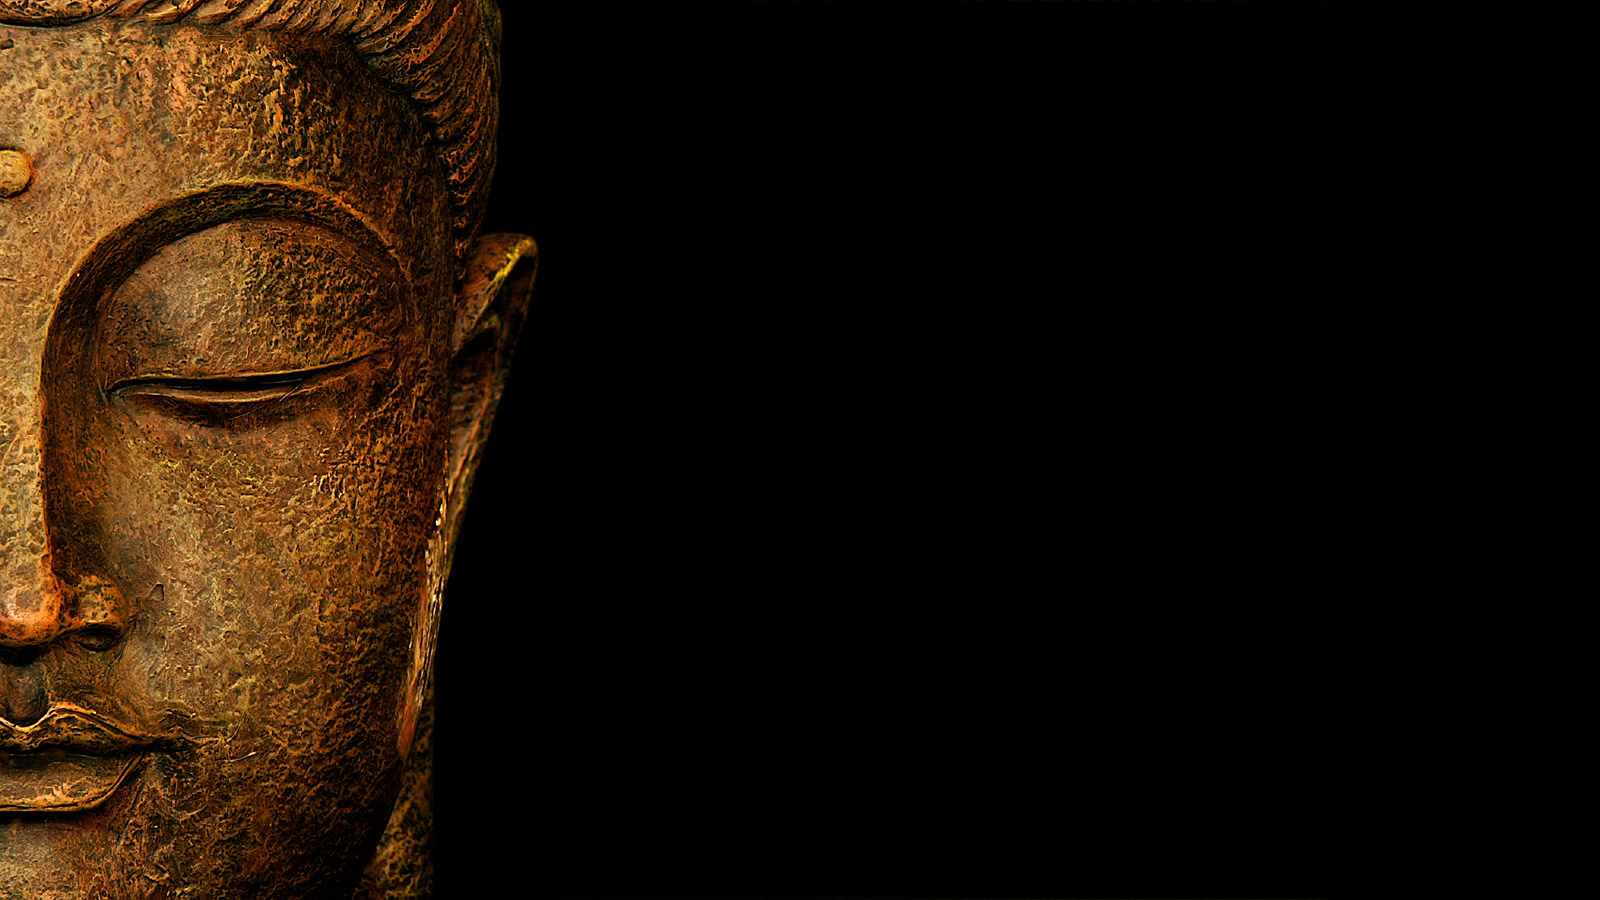 Buddha Wallpaper Siddhartha Gotama Awareness and Meditation